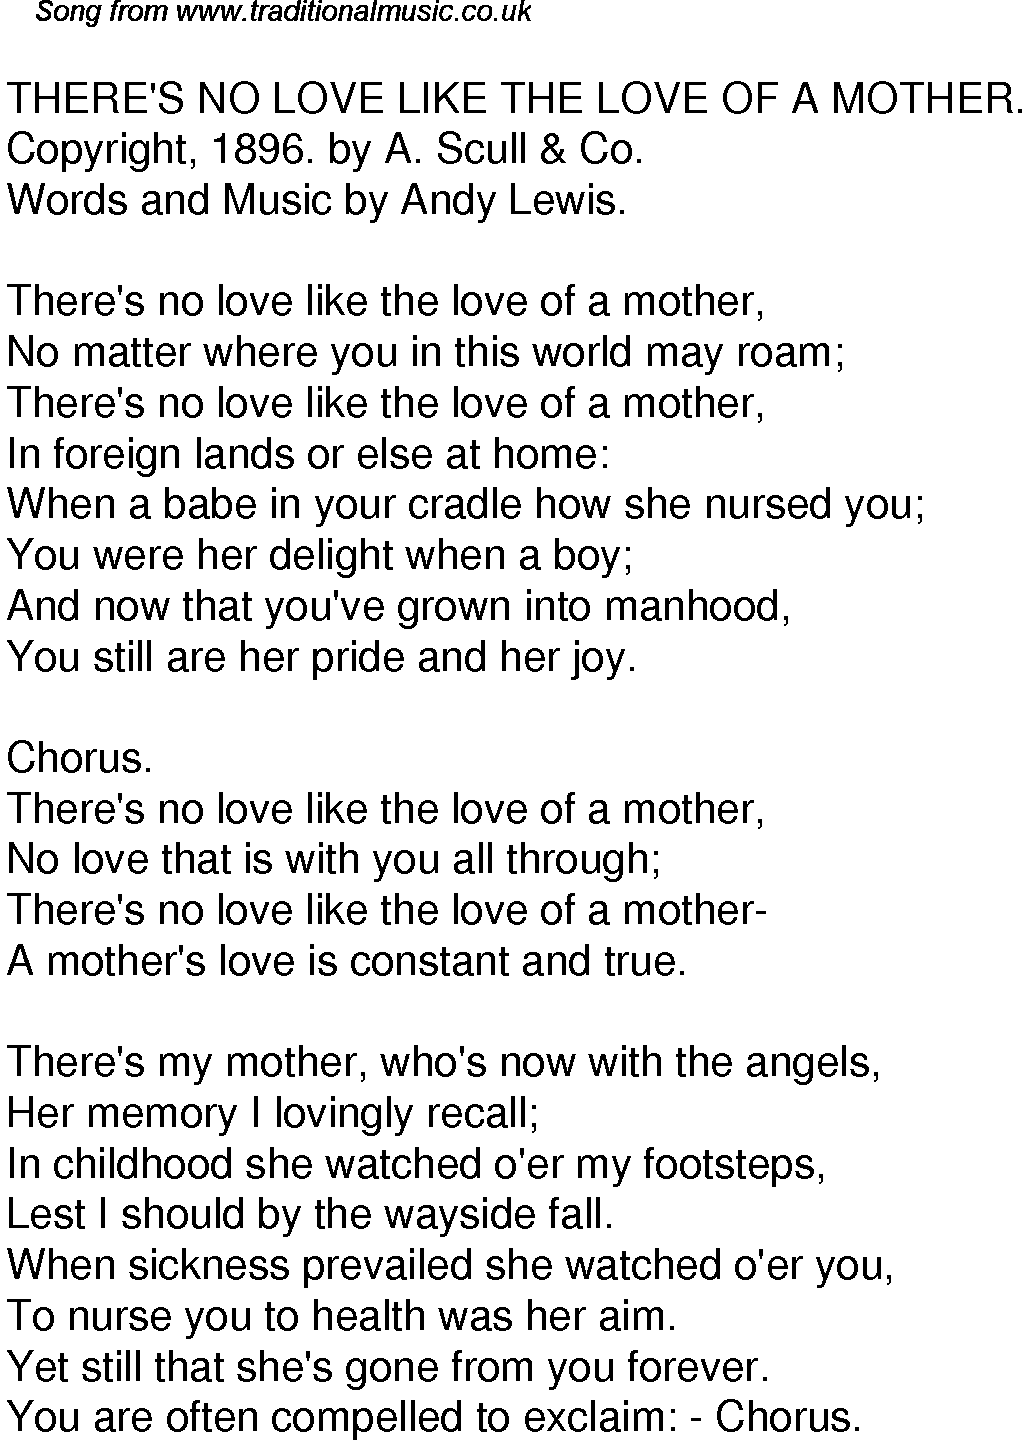 old time song lyrics for 52 there s no love like the love of a mother